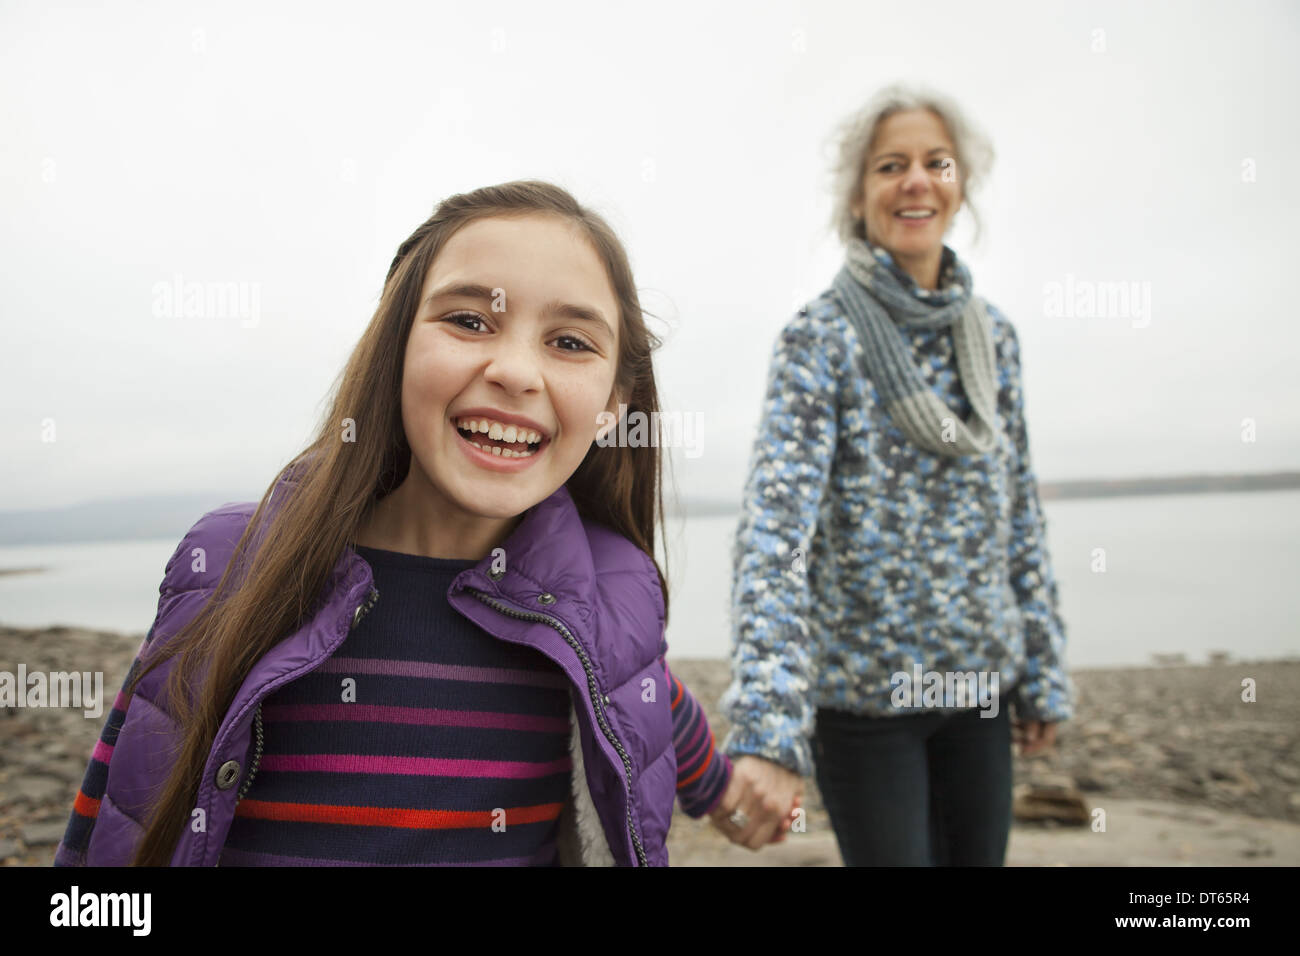 Mature woman and young girl